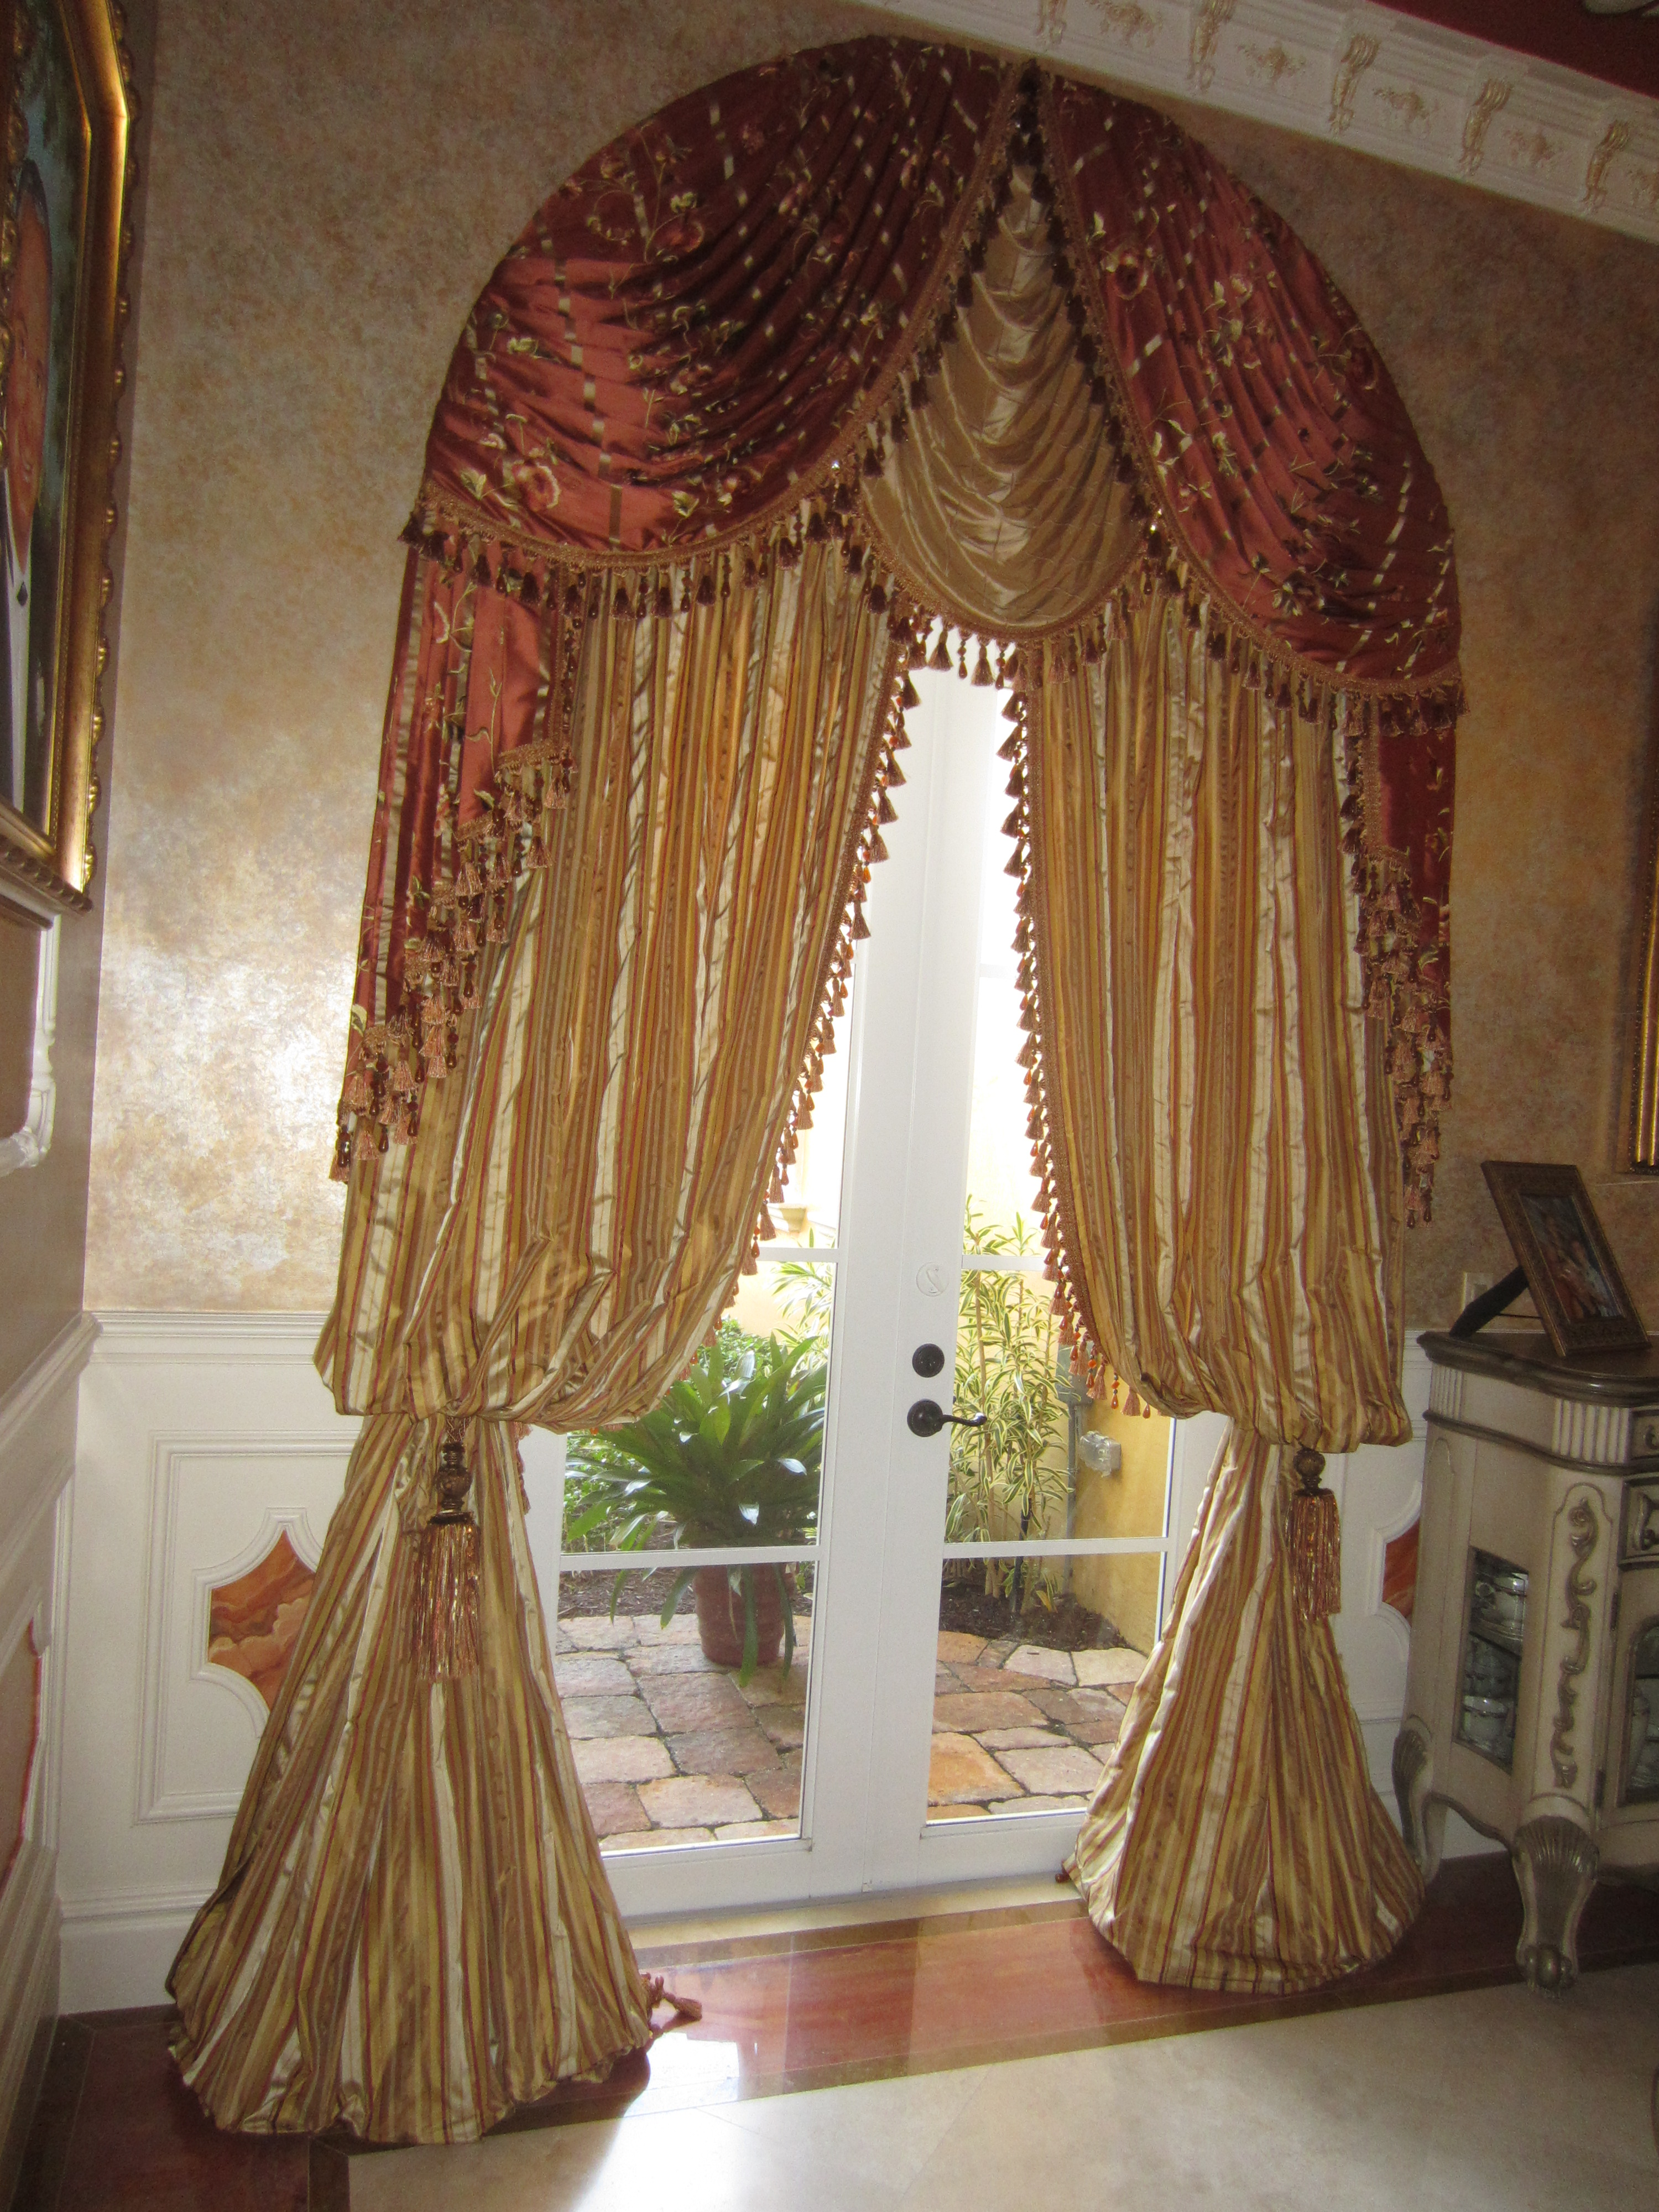 Swags & Jabots w/ Beaded Tassel Fringe over Stationary Panels in a Bishops Sleeve w/ Rope Tiebacks on an Arch Window